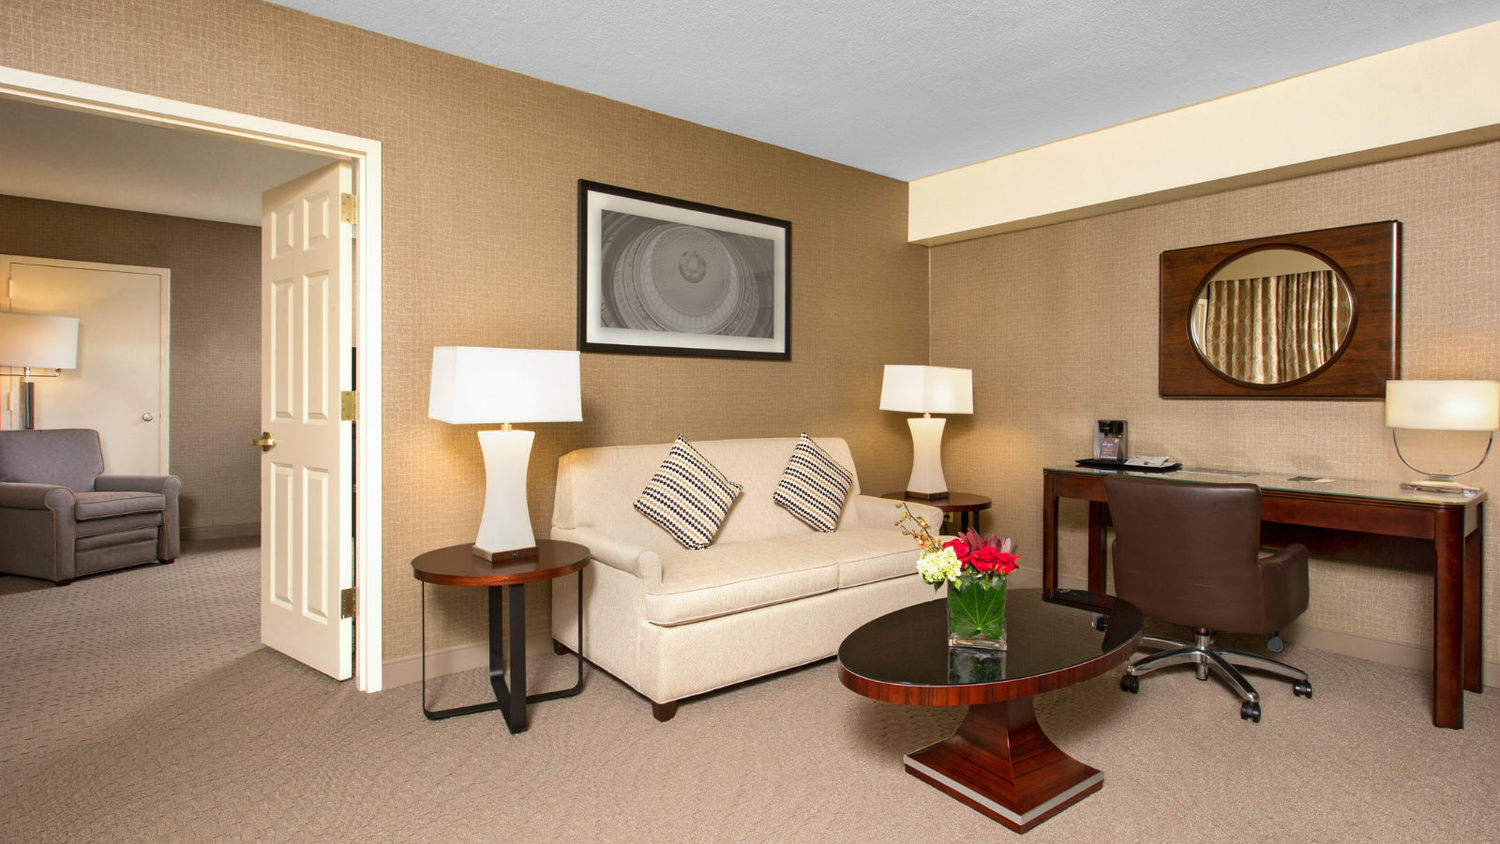 Hotels in Columbia, MD | Sheraton Columbia Town Center Hotel